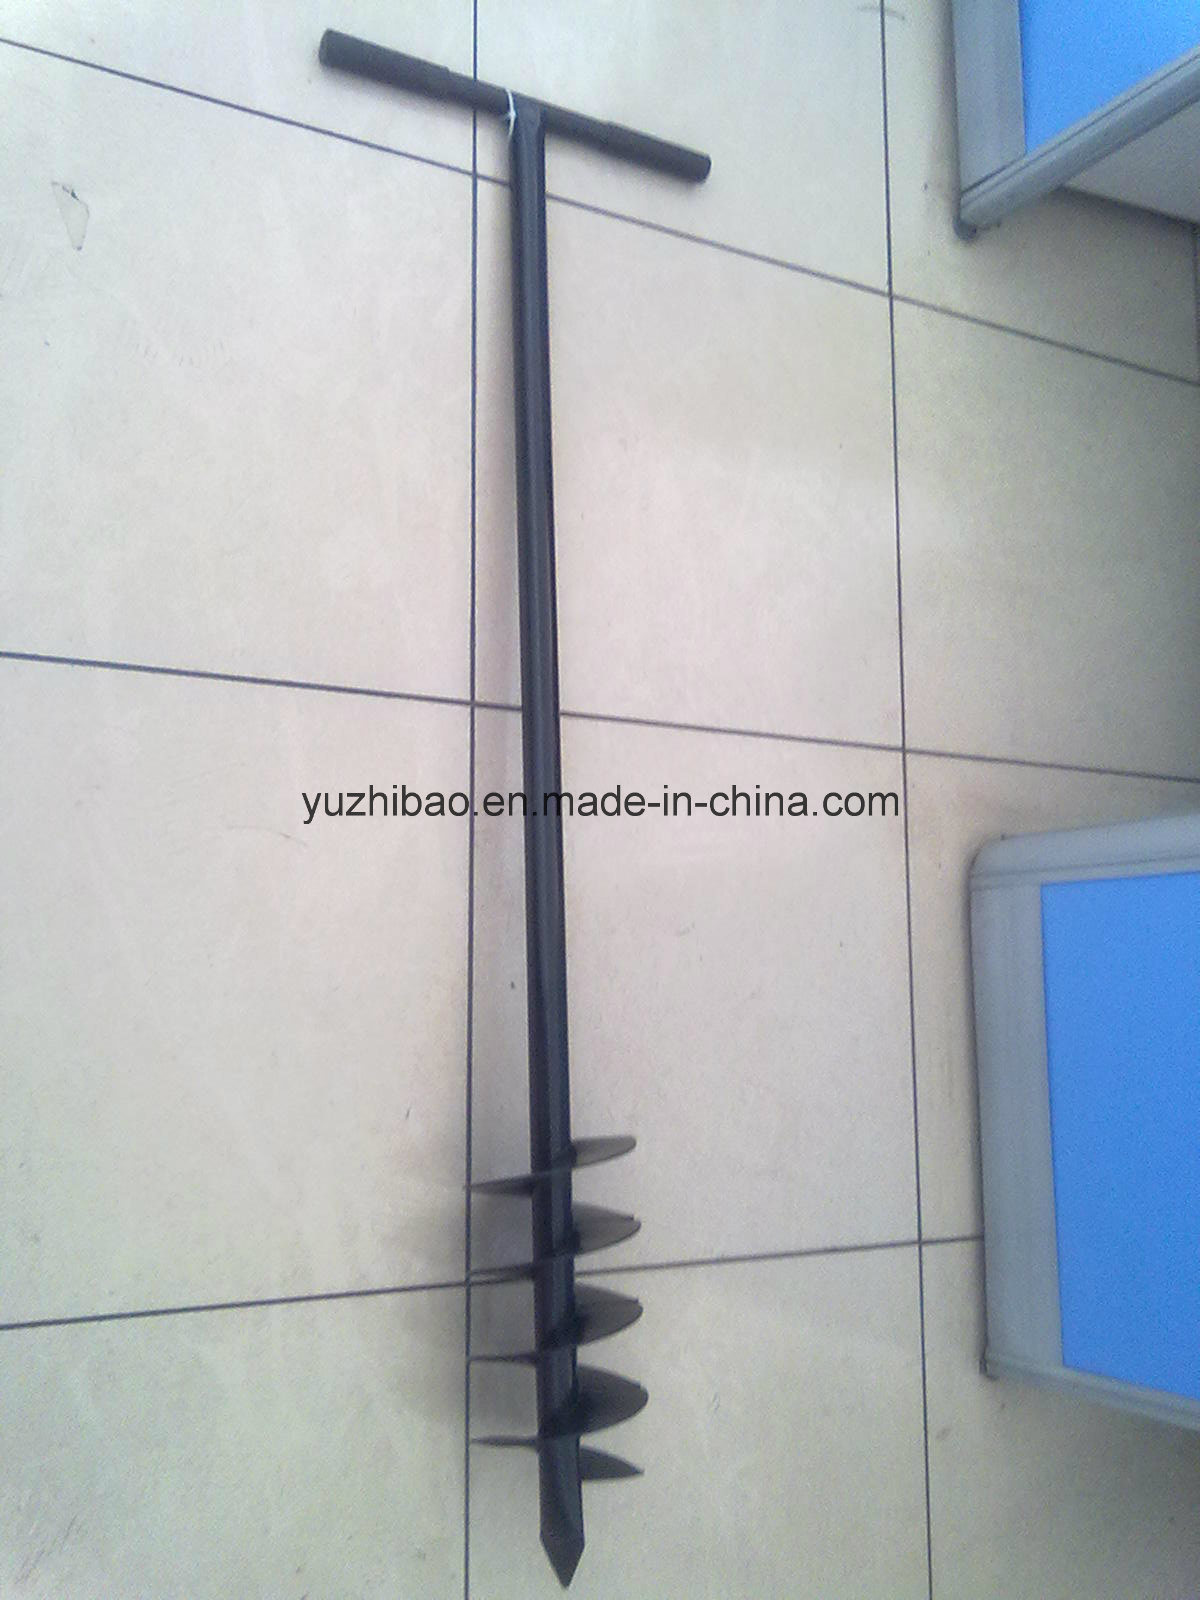 High Quality Mannual Earth Auger, Hole Drilling Earth Auger, Ground Auger